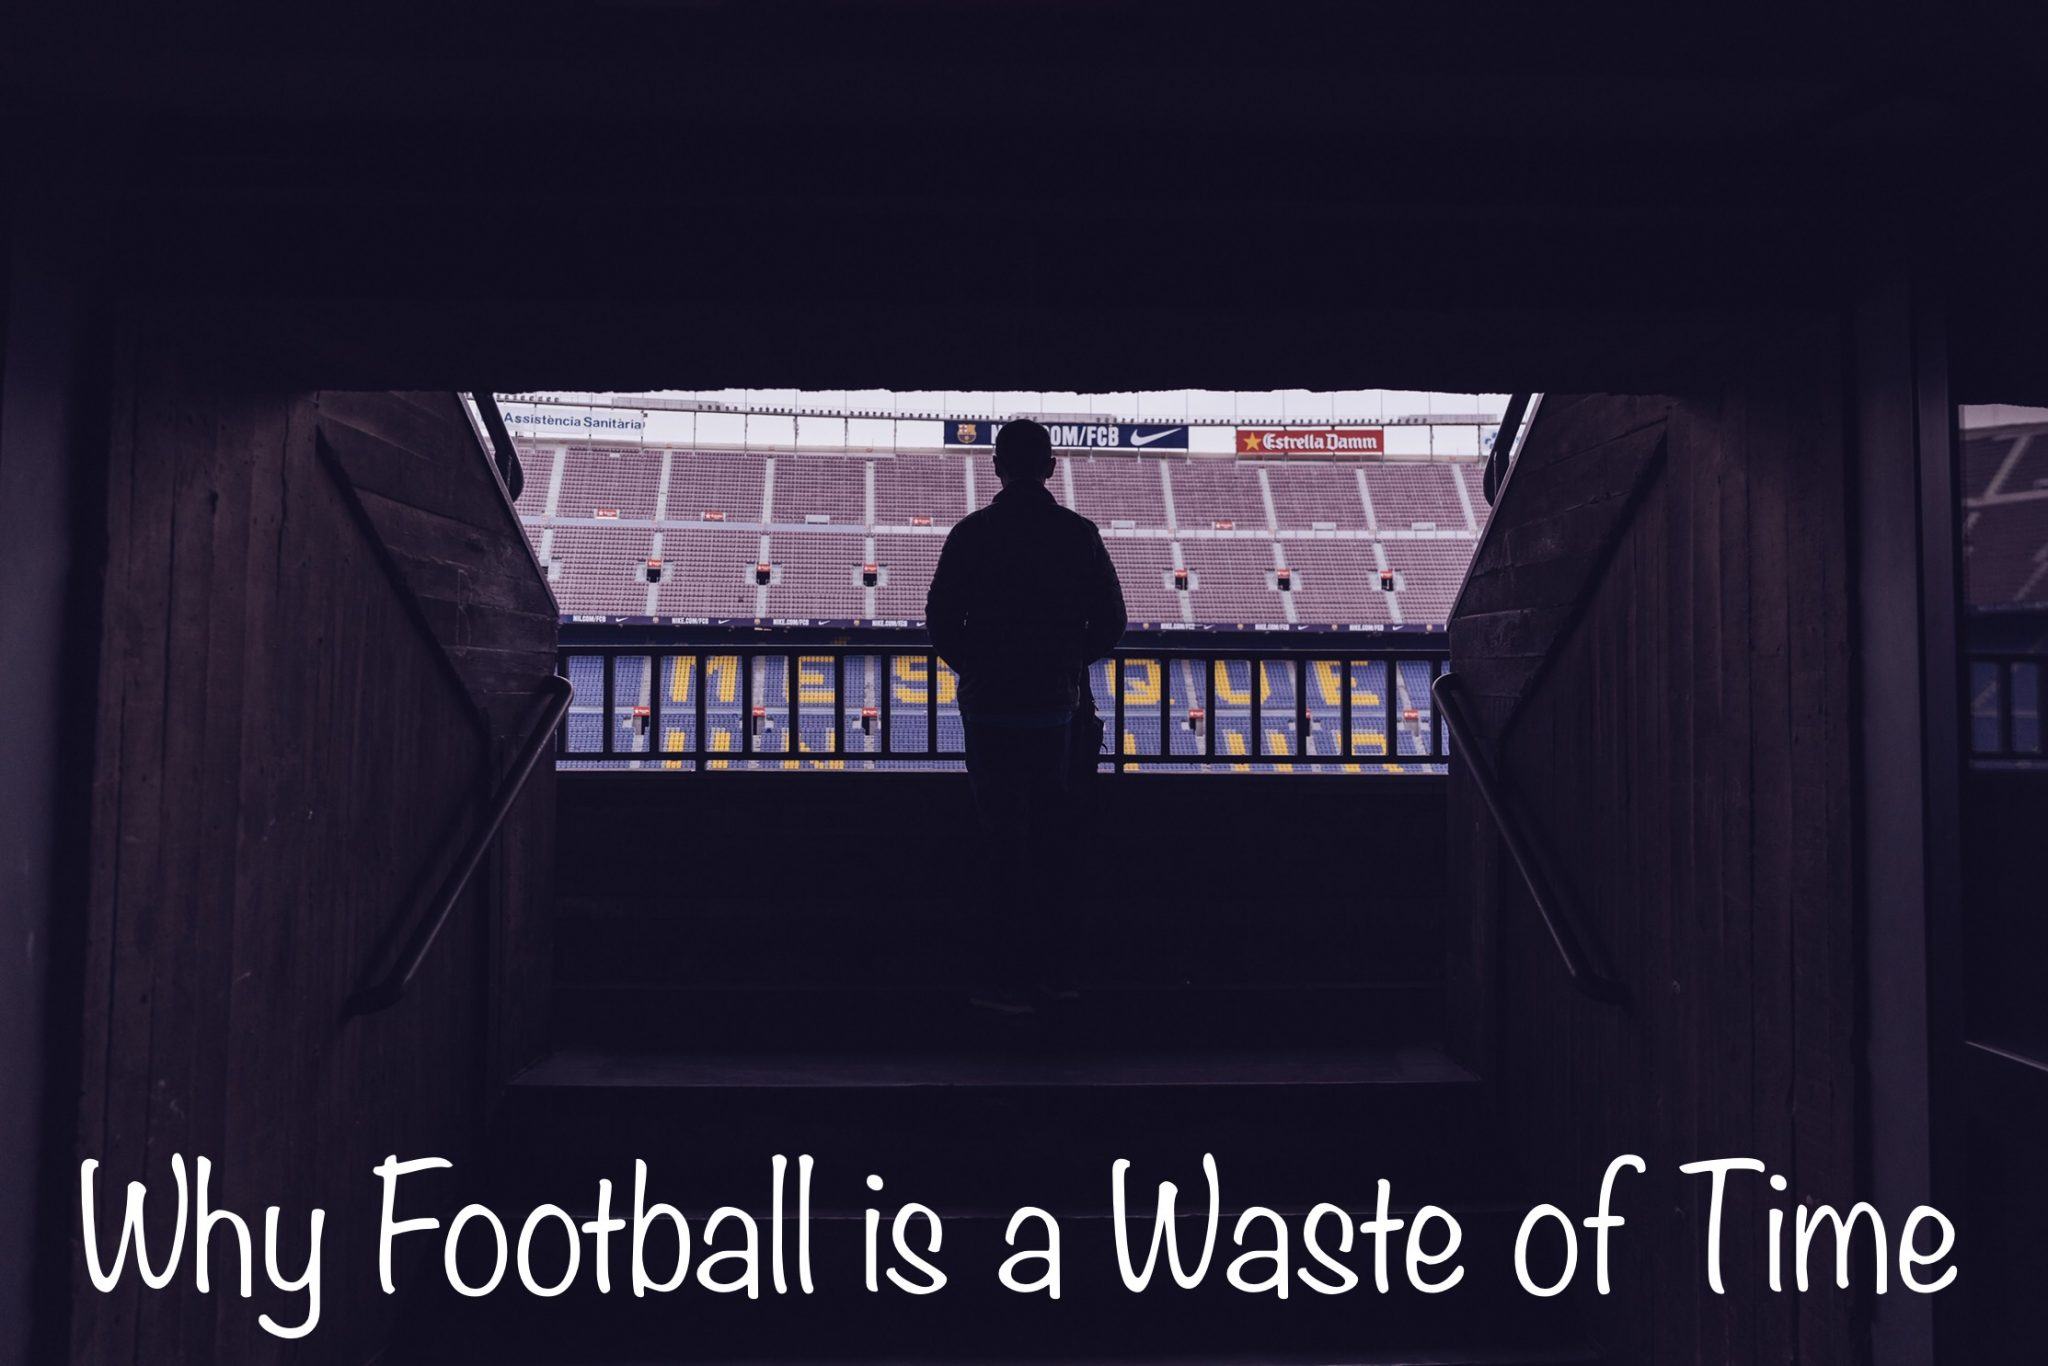 Football is a Waste of Time